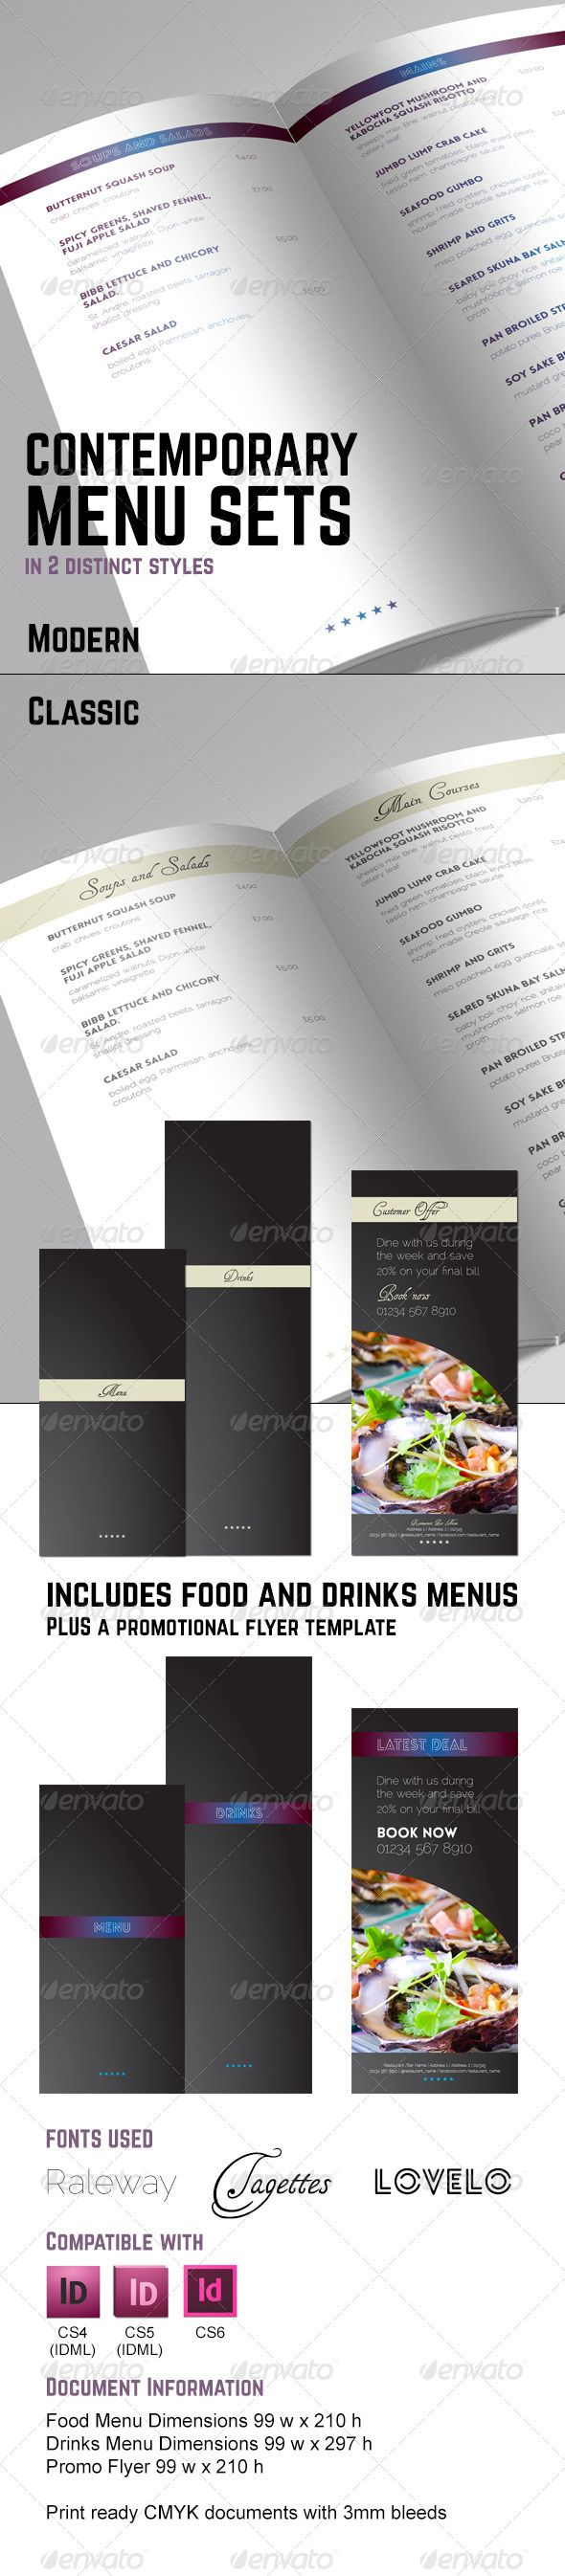 Contemporary Sophisticated Menu Set — InDesign INDD #cuisine #menu • Available here → https://graphicriver.net/item/contemporary-sophisticated-menu-set/5947634?ref=pxcr